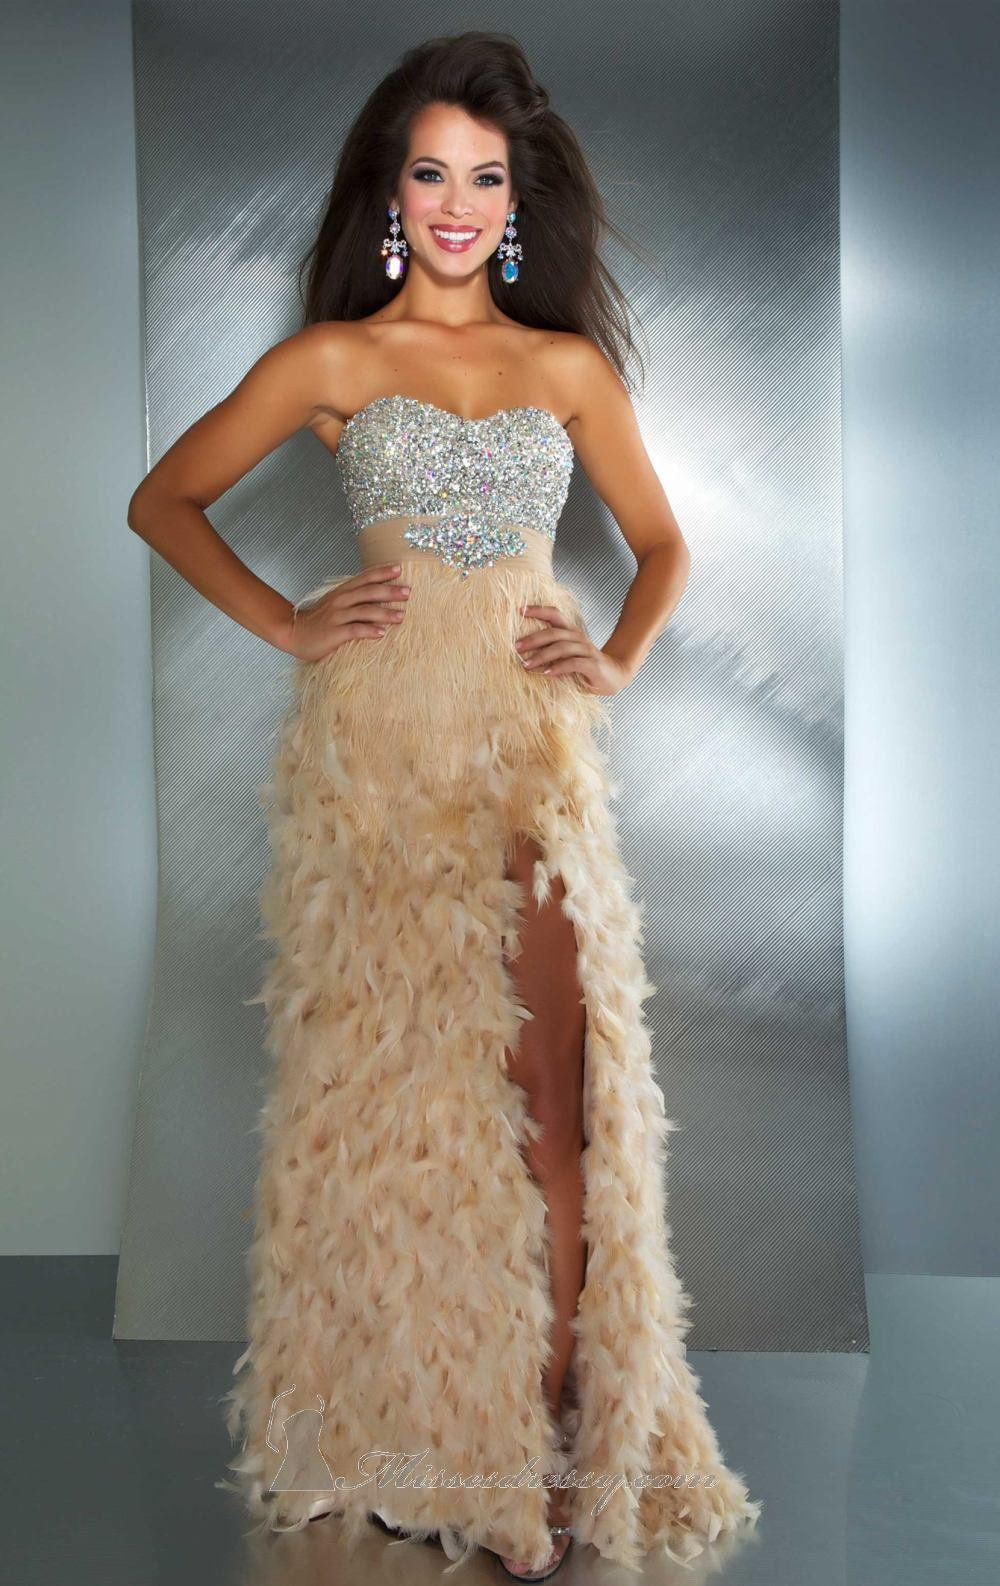 The Feathers I Want At The Bottom Of A Mermaid Silhouette Prom